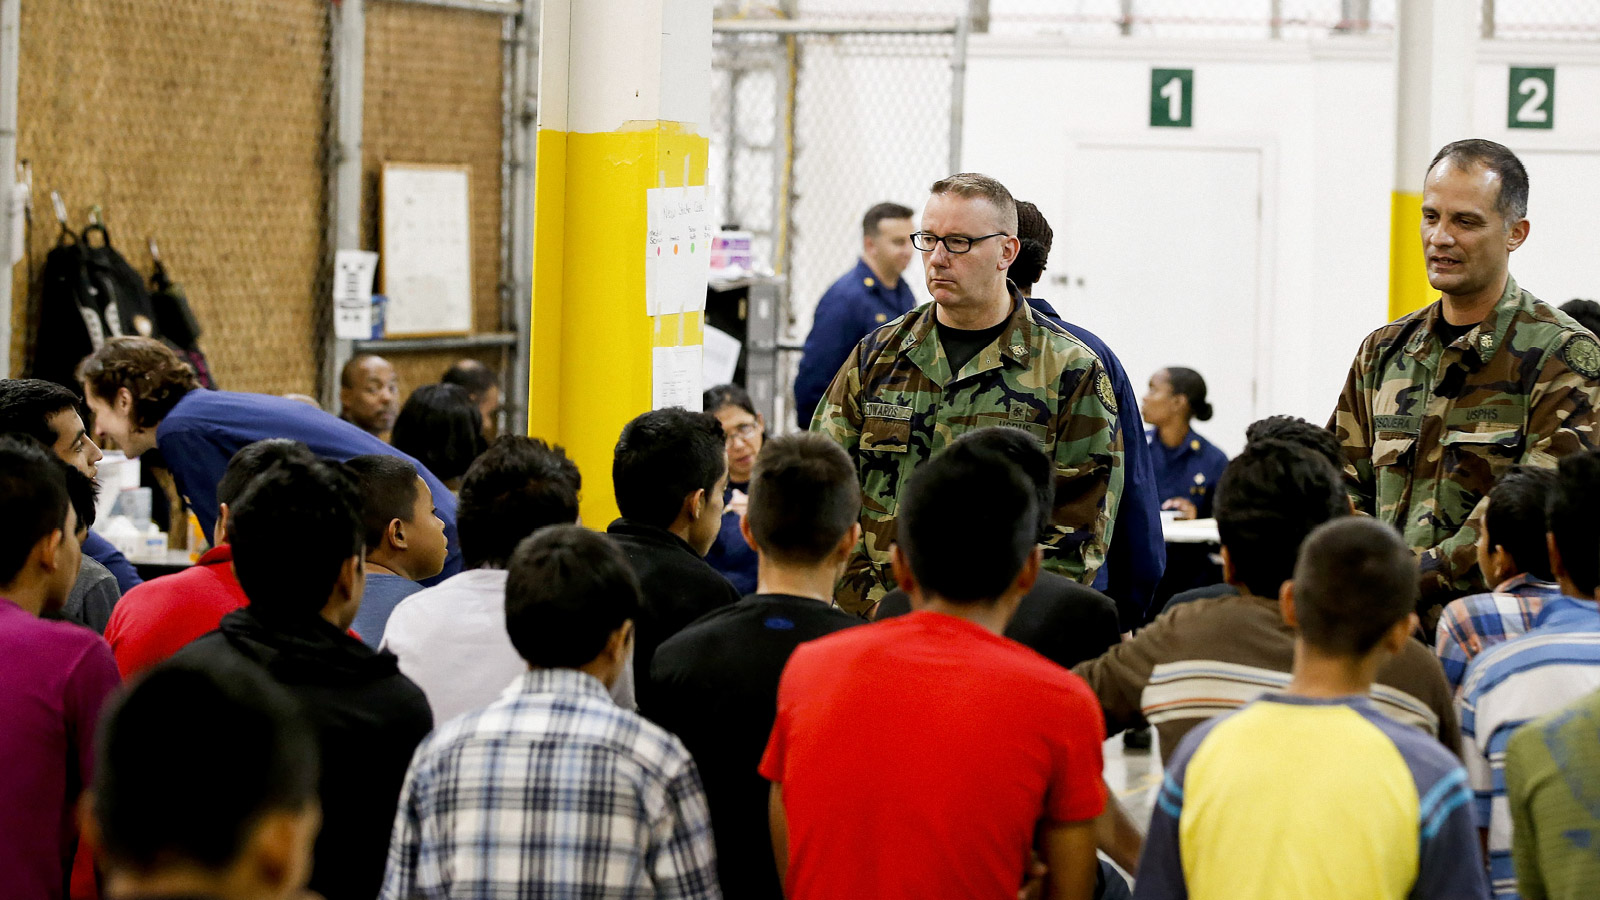 Central American minors are processed and held at the U.S. Customs and Border Protection Center in Nogales, Arizona